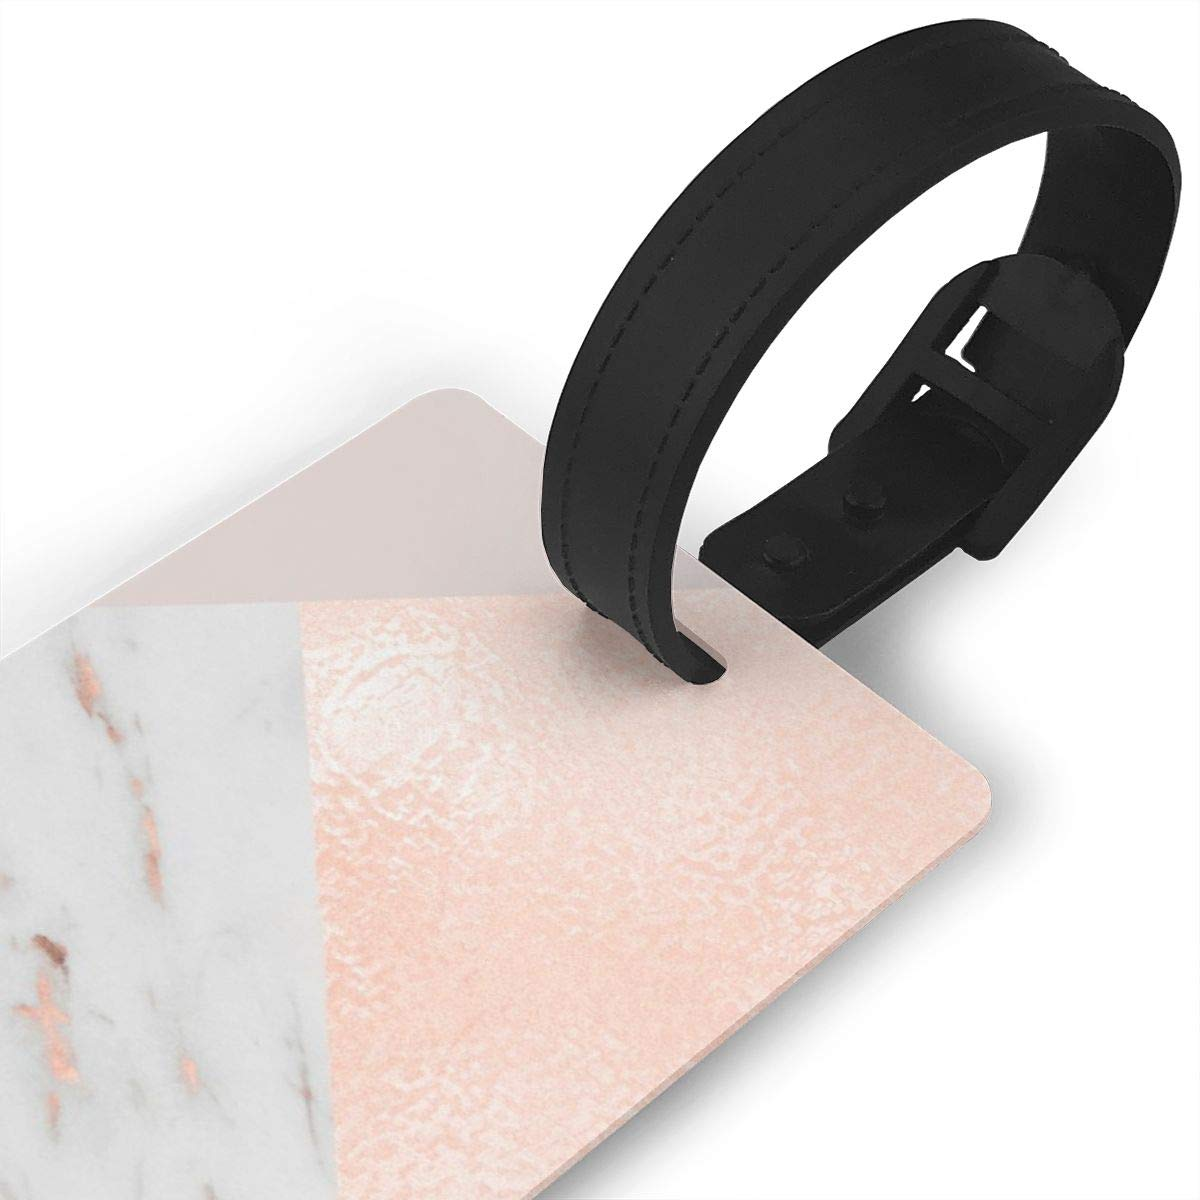 Blush Pink Layers Of Rose Gold And Marble Luggage Tags Suitcase Labels Bag Travel Accessories Set of 2